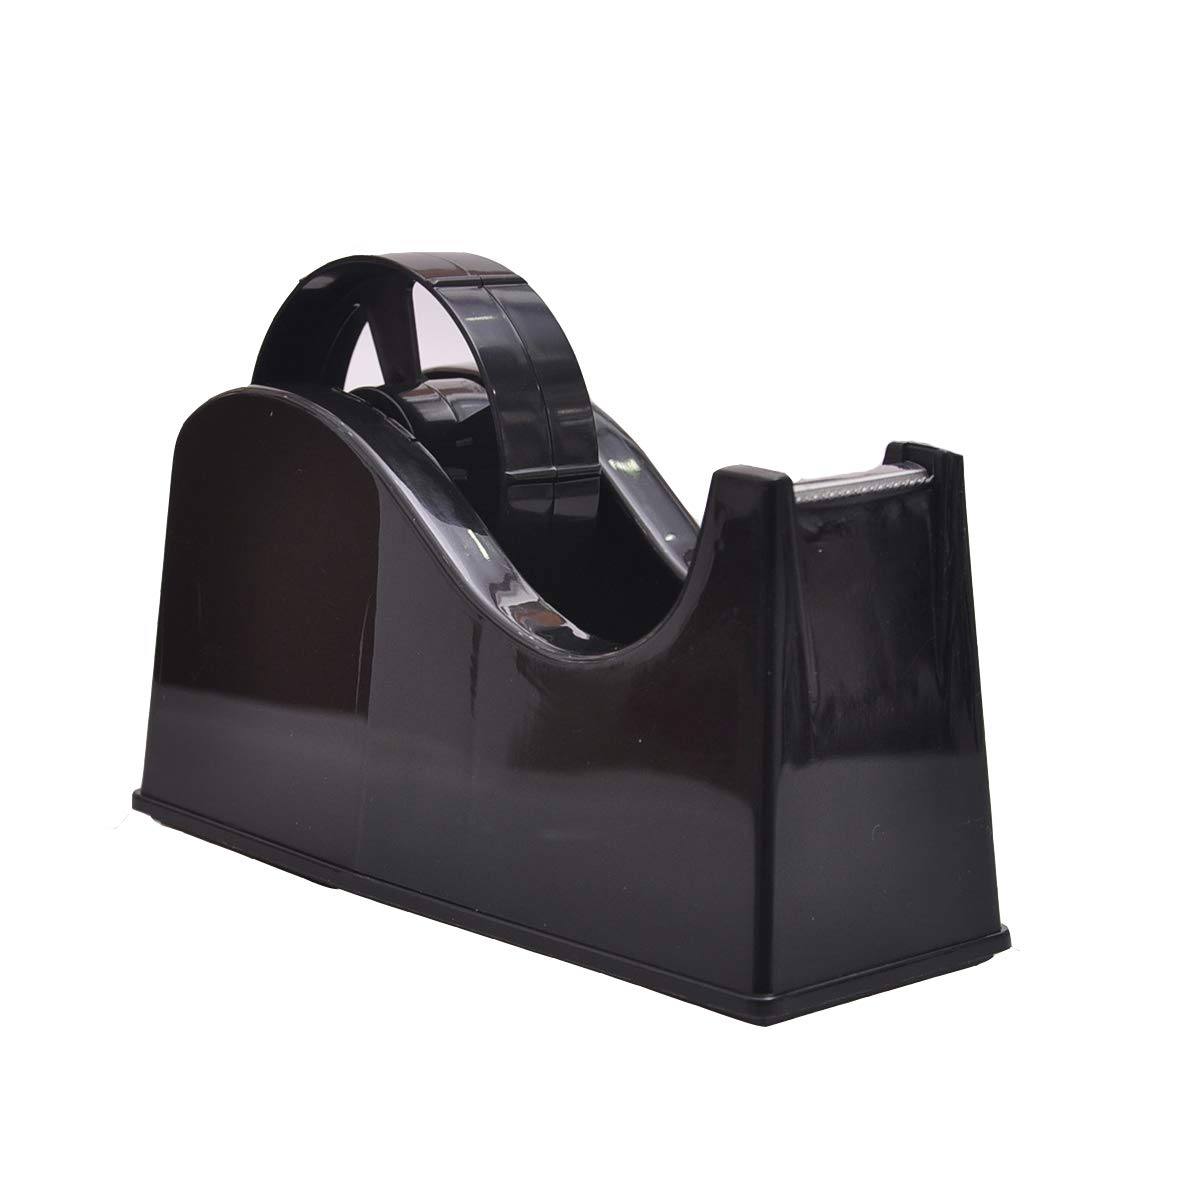 "Desktop Tape Dispenser Adhesive Roll Holder (Fits 1"" & 3"" Core) with Weighted Nonskid Base Black"